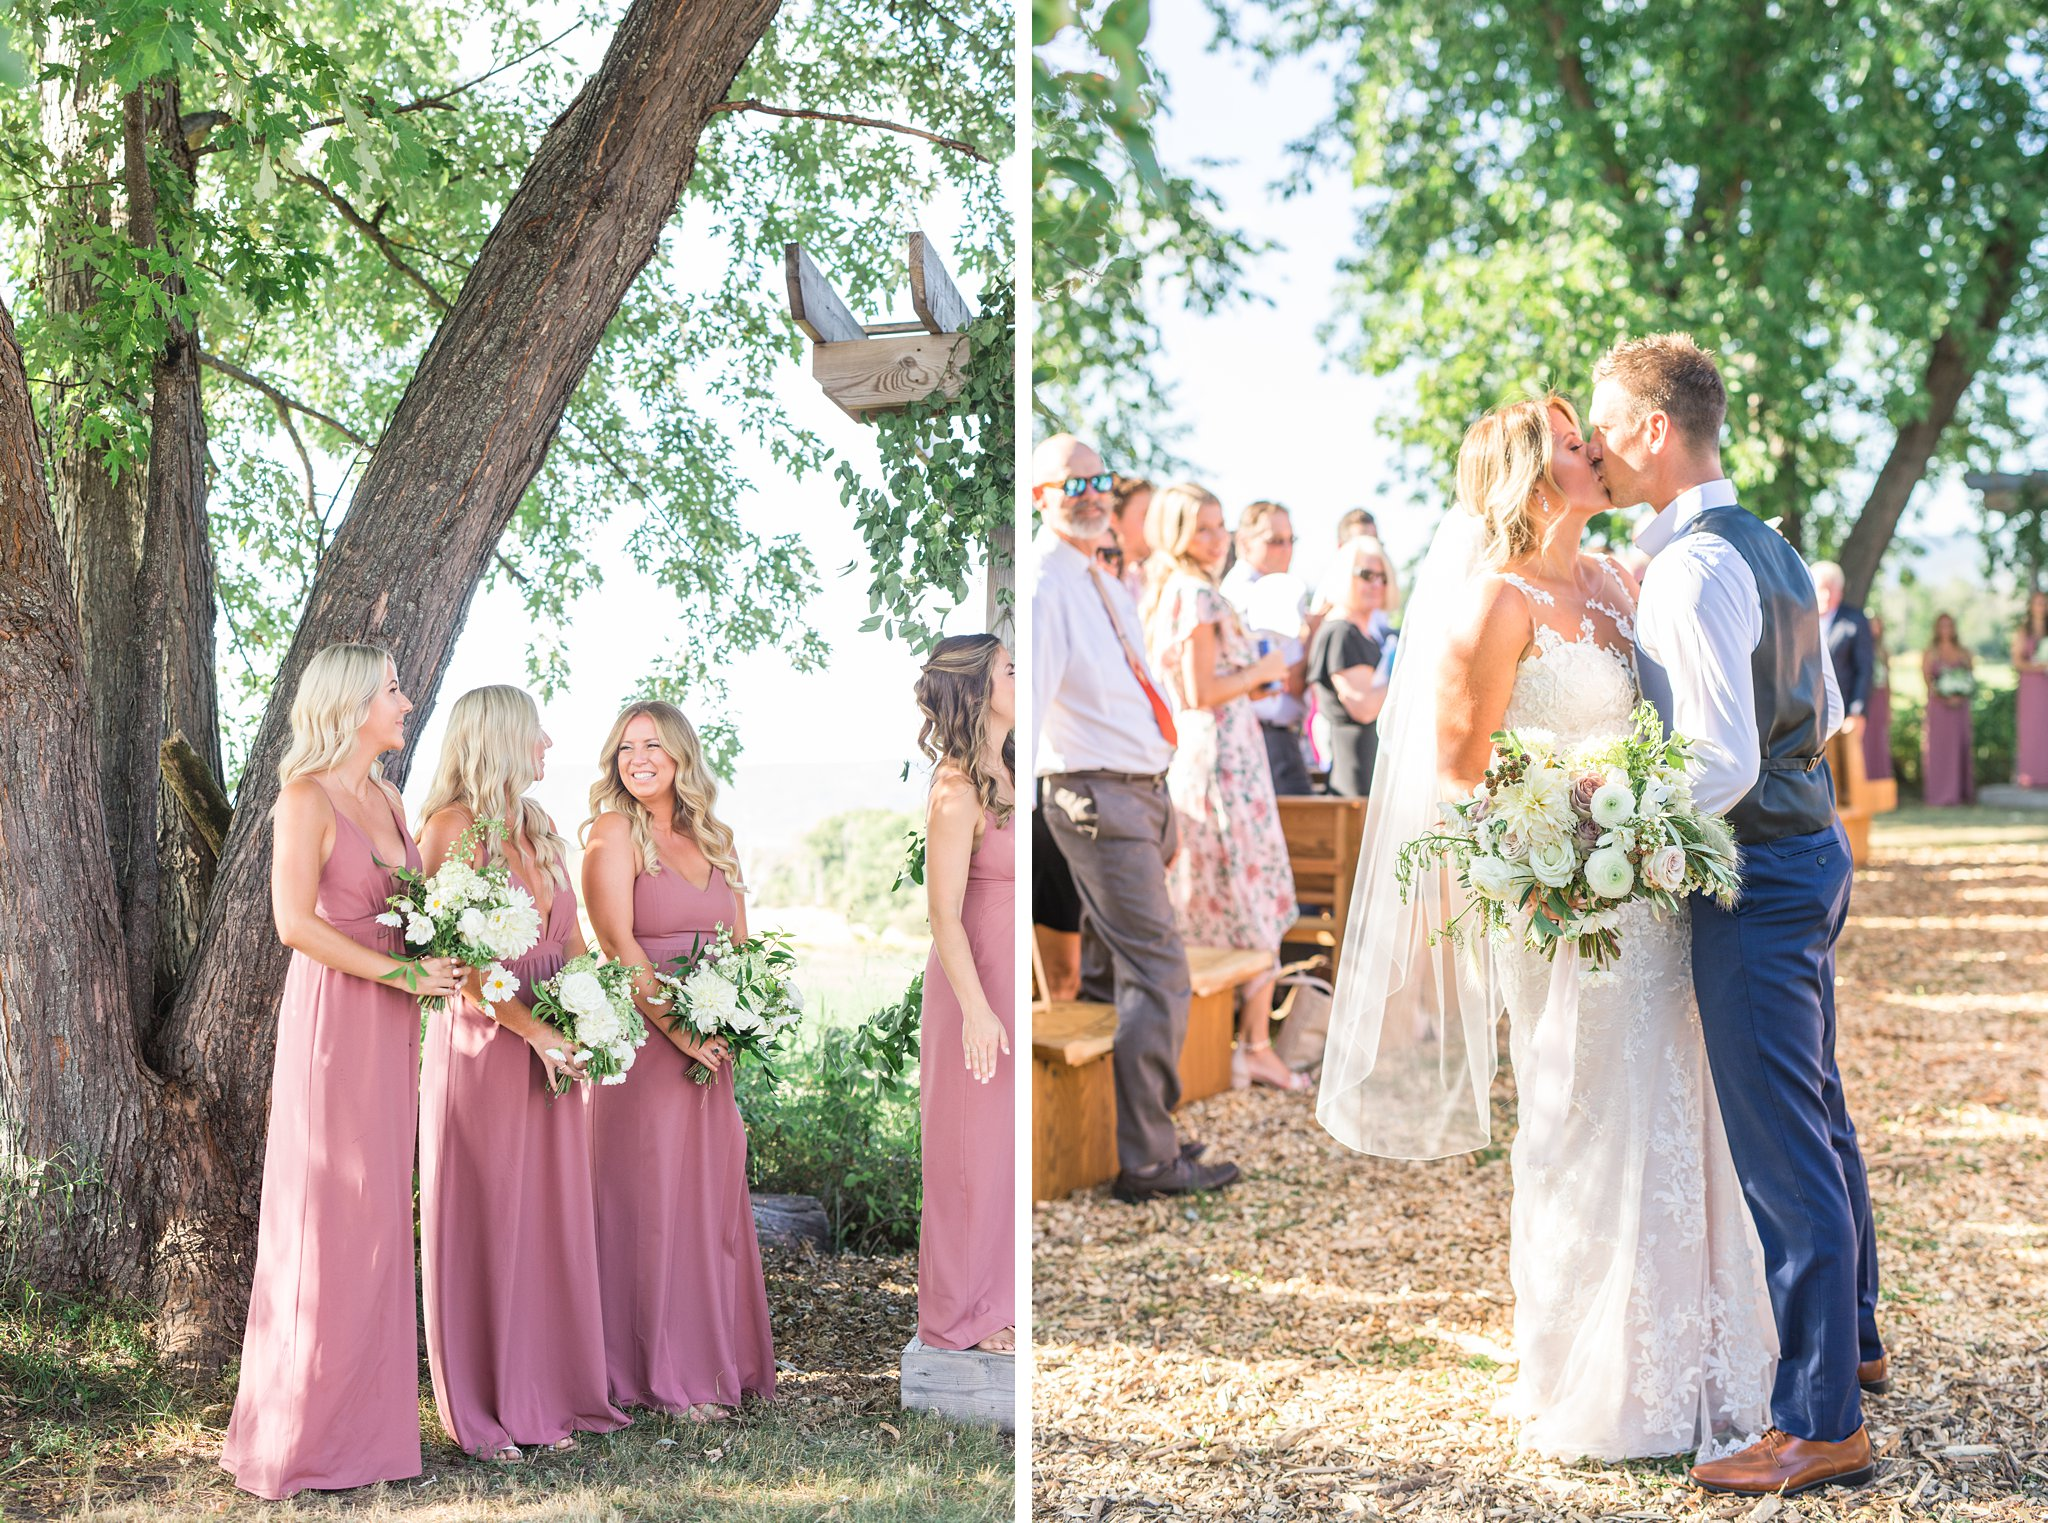 Outdoor ceremony, tree, Private Estate Wedding Photos, Amy Pinder Photography